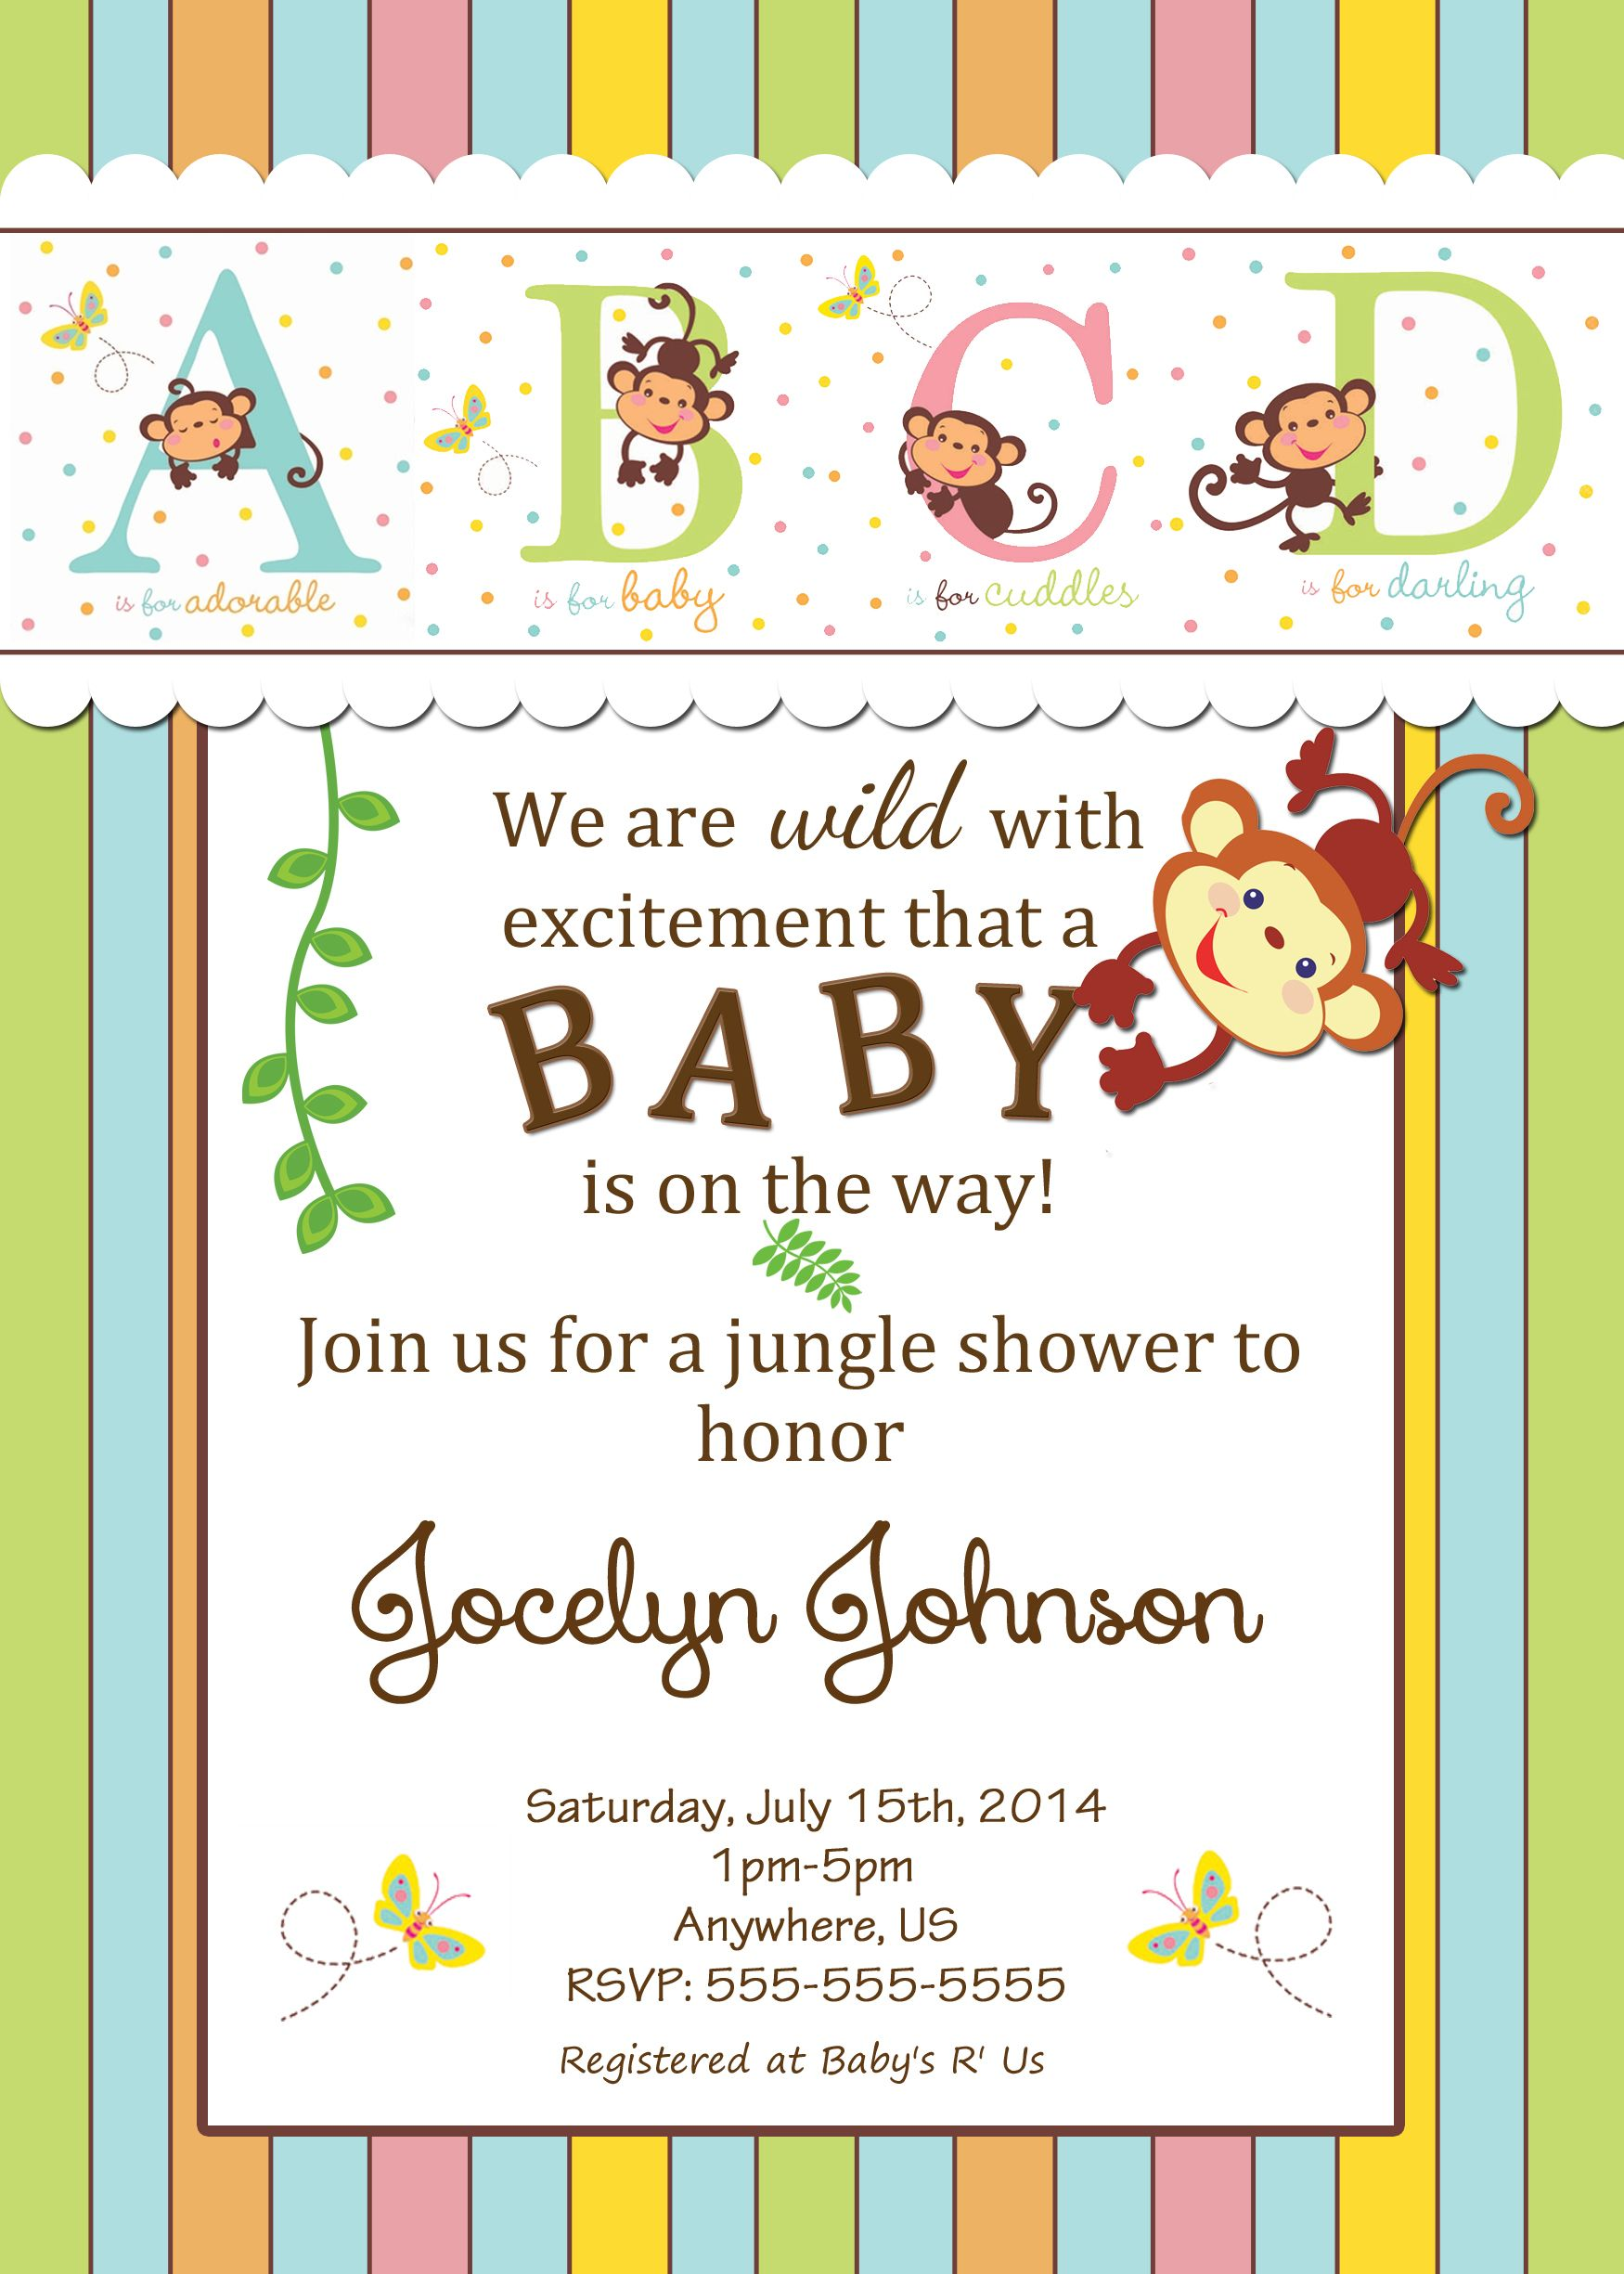 bunny walmart minnie mouse shower invitations as well of also at monkey themes size announcements baby full